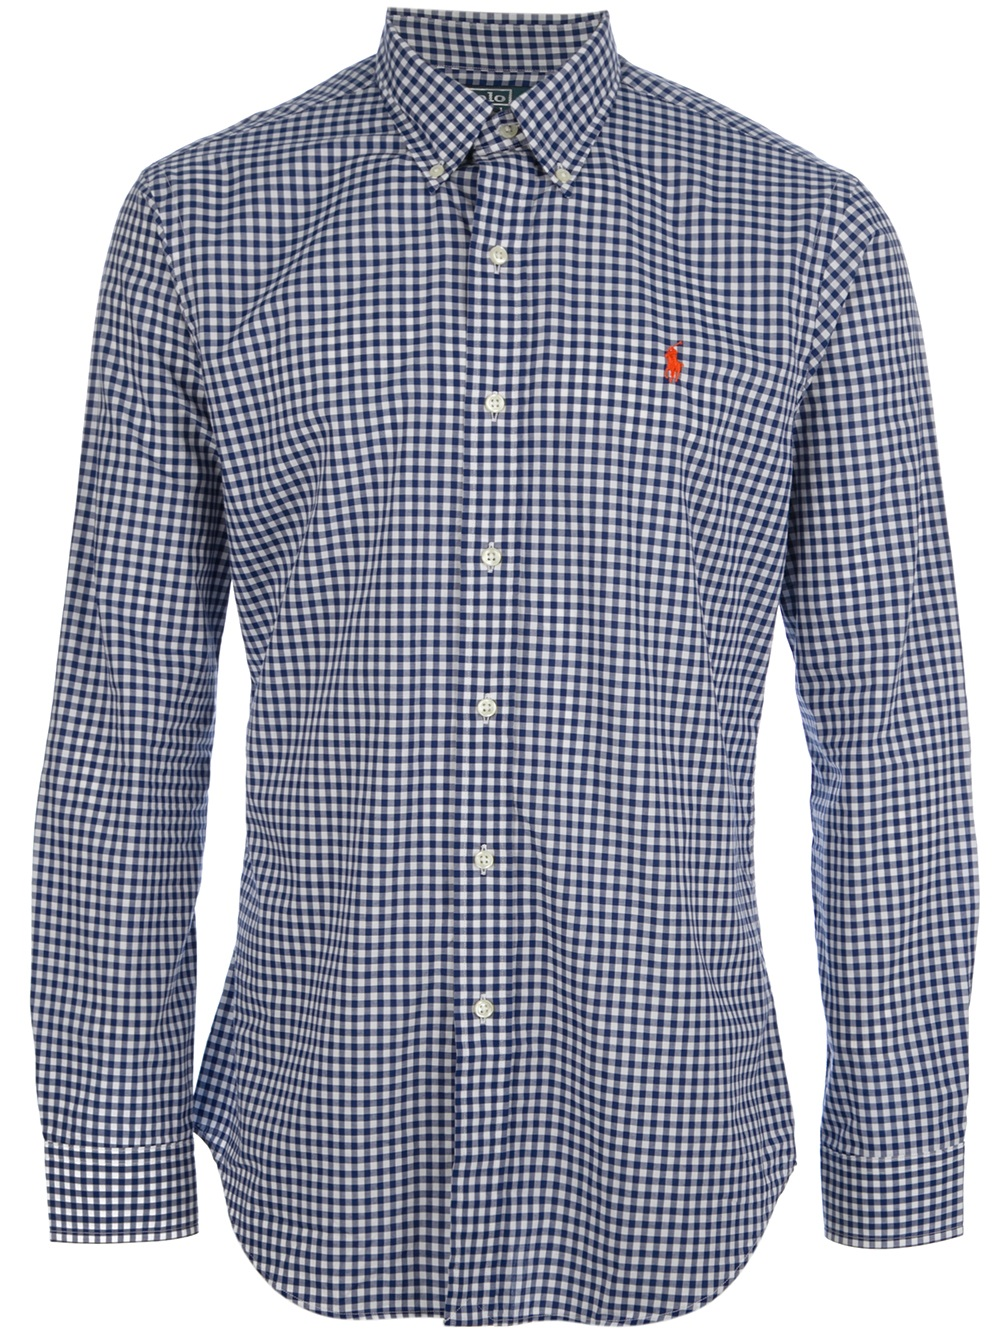 Polo Ralph Lauren Gingham Button Down Shirt In Blue For